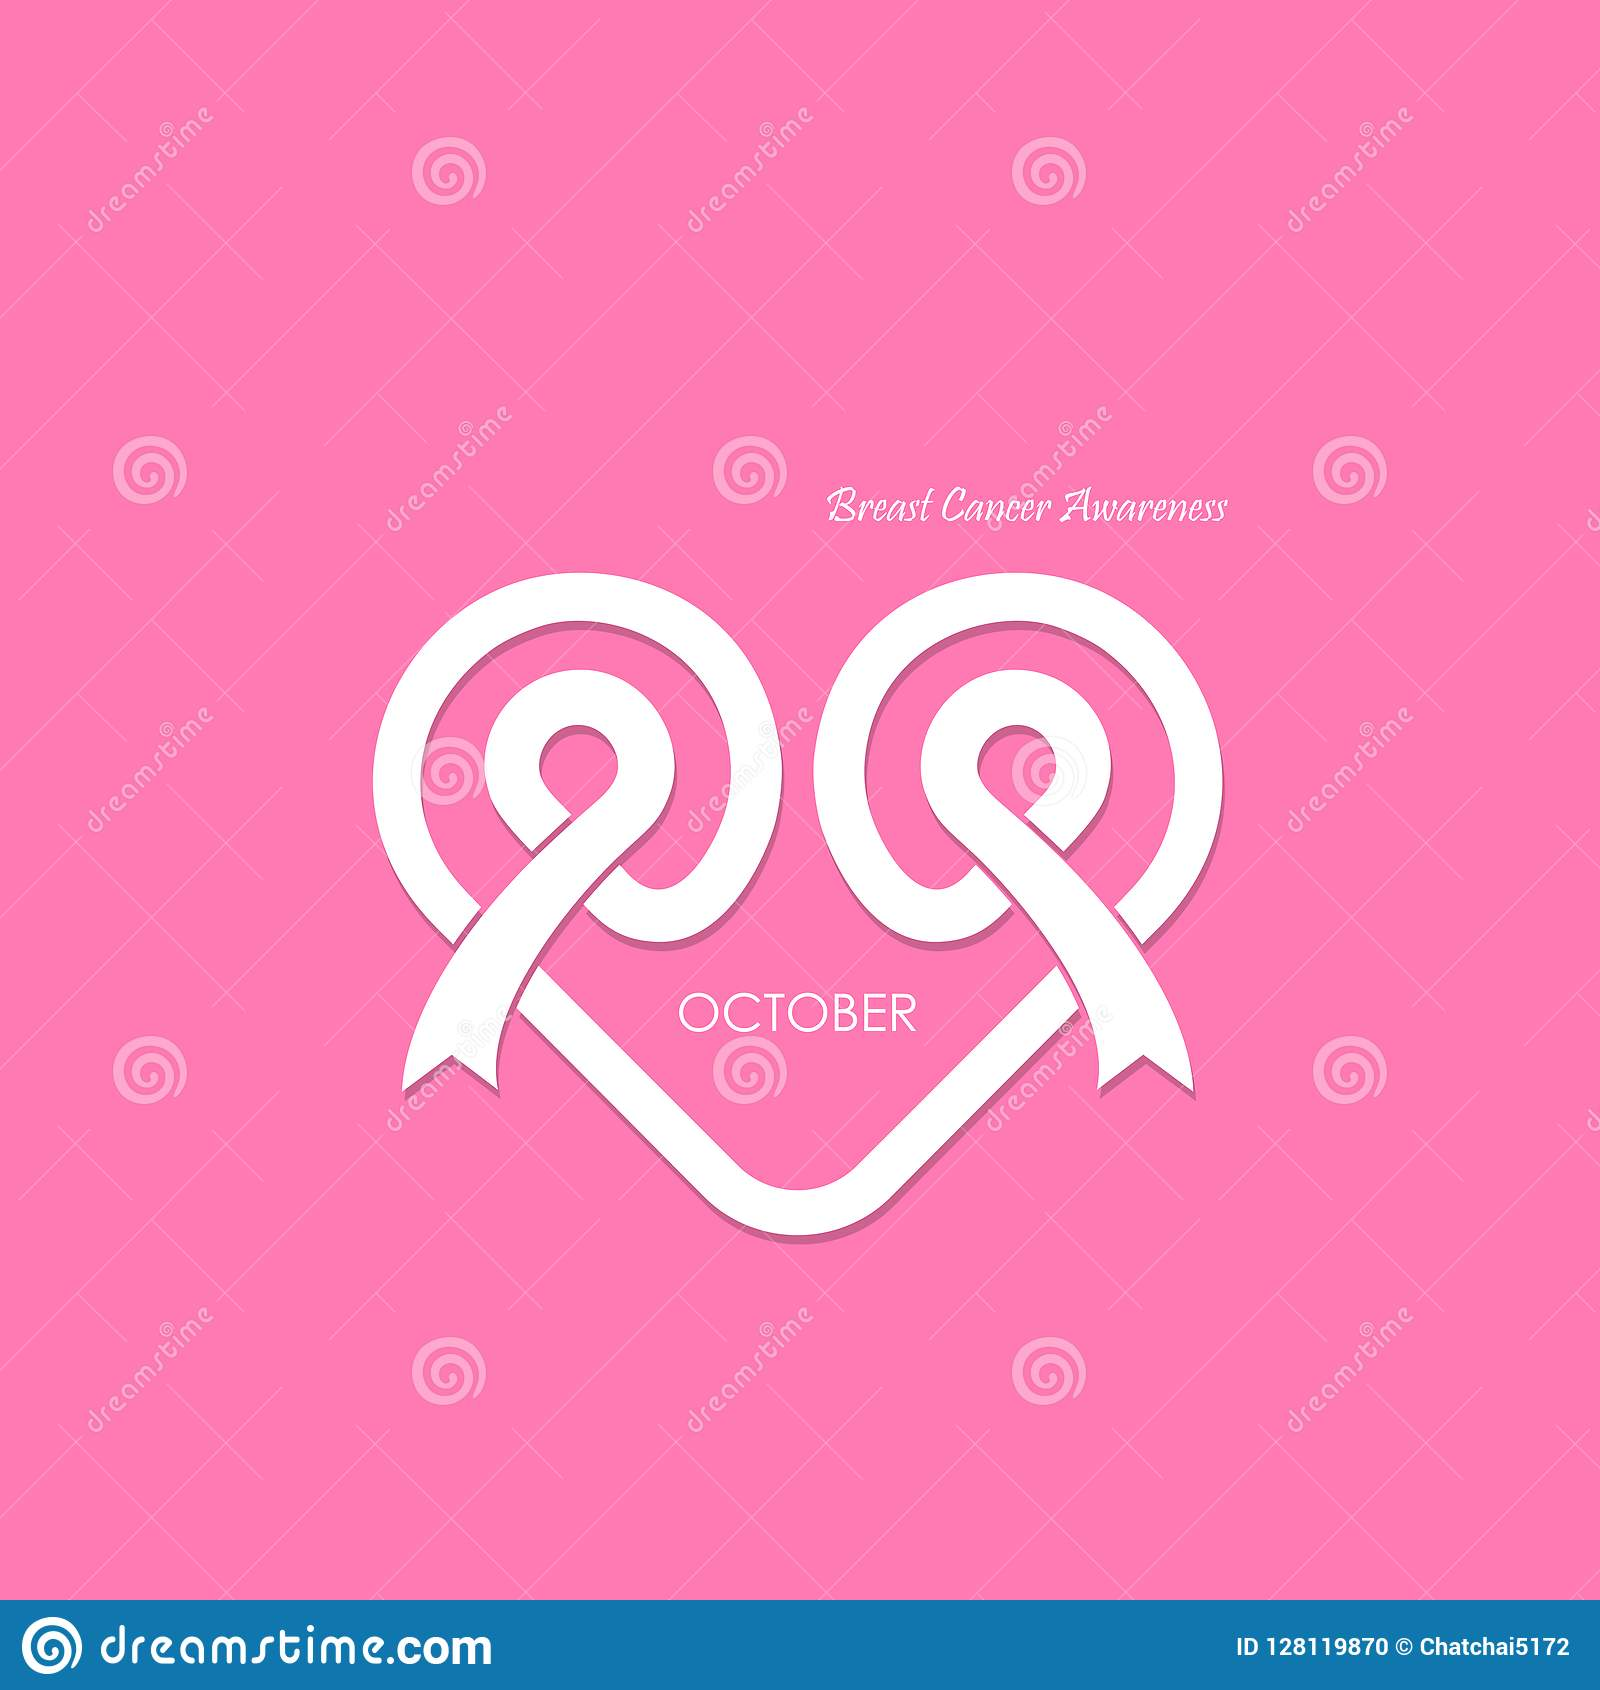 caa1709e475 Heart Shape & Pink Ribbon Icon.Breast Cancer October Awareness M ...